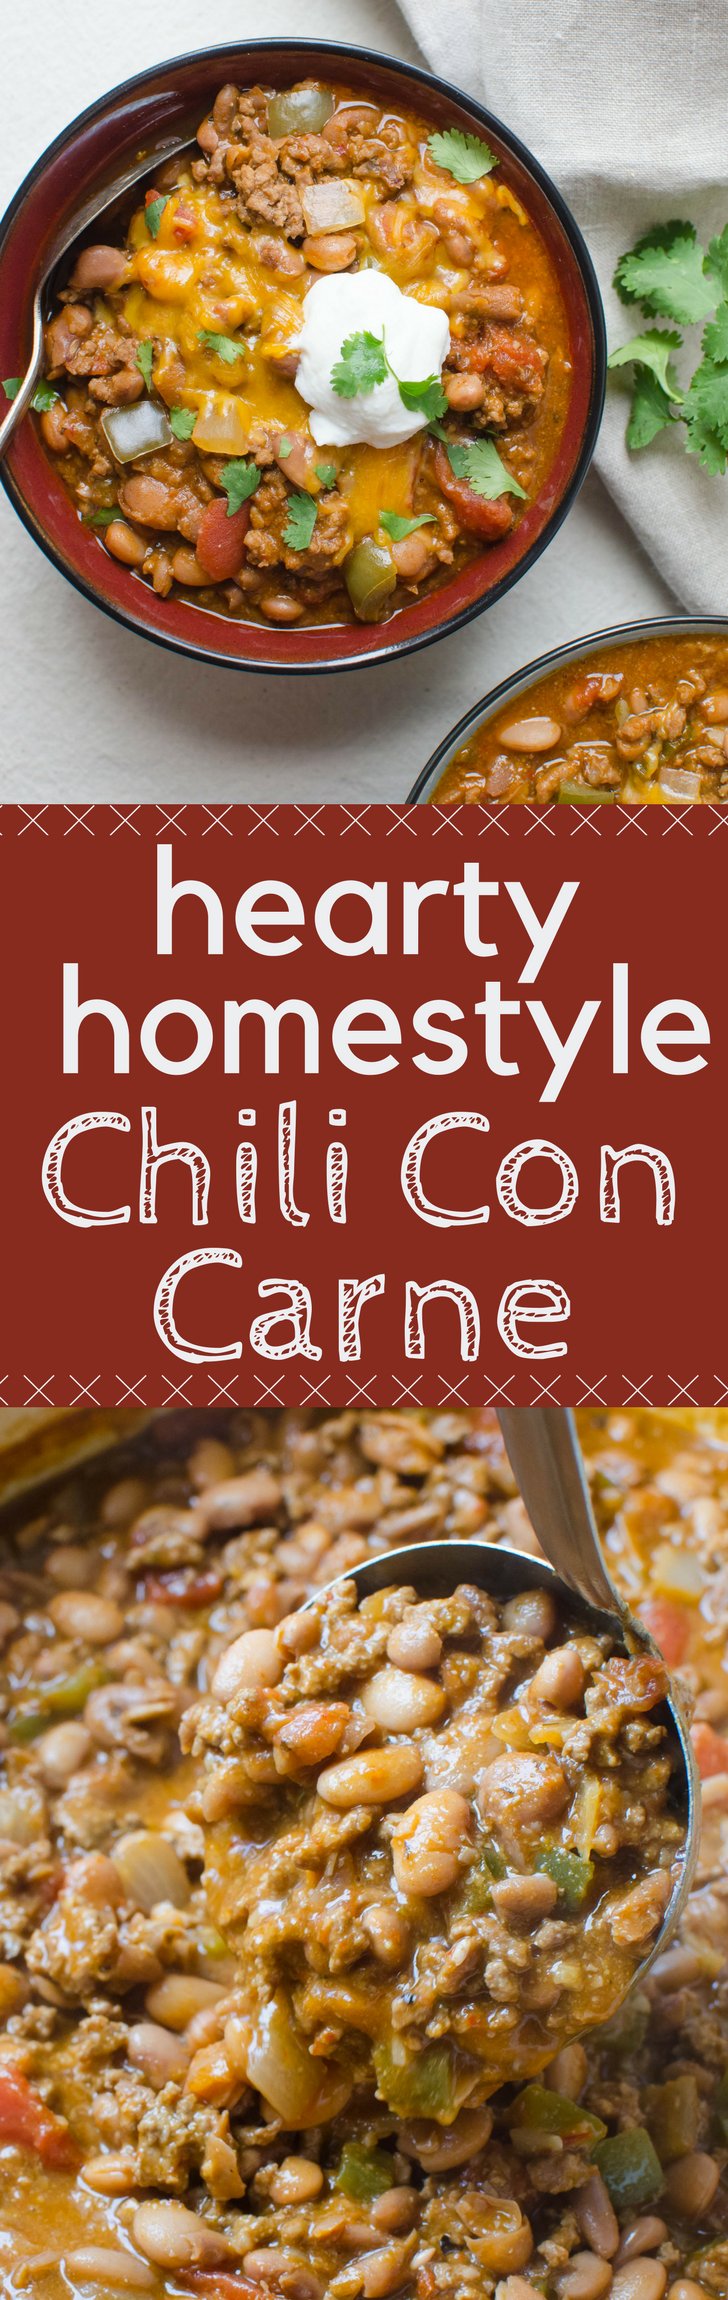 The best Hearty Homestyle Chili Con Carne recipe starts with dried New Mexico or Guajillo chile peppers & chipotles in adobo sauce! Welcome to flavor town. #chili #chiliconcarne #beans #groundbeef #NewMexicochiles #Guajillochiles #chipotle #adobo #pintobeans #chilifromscratch